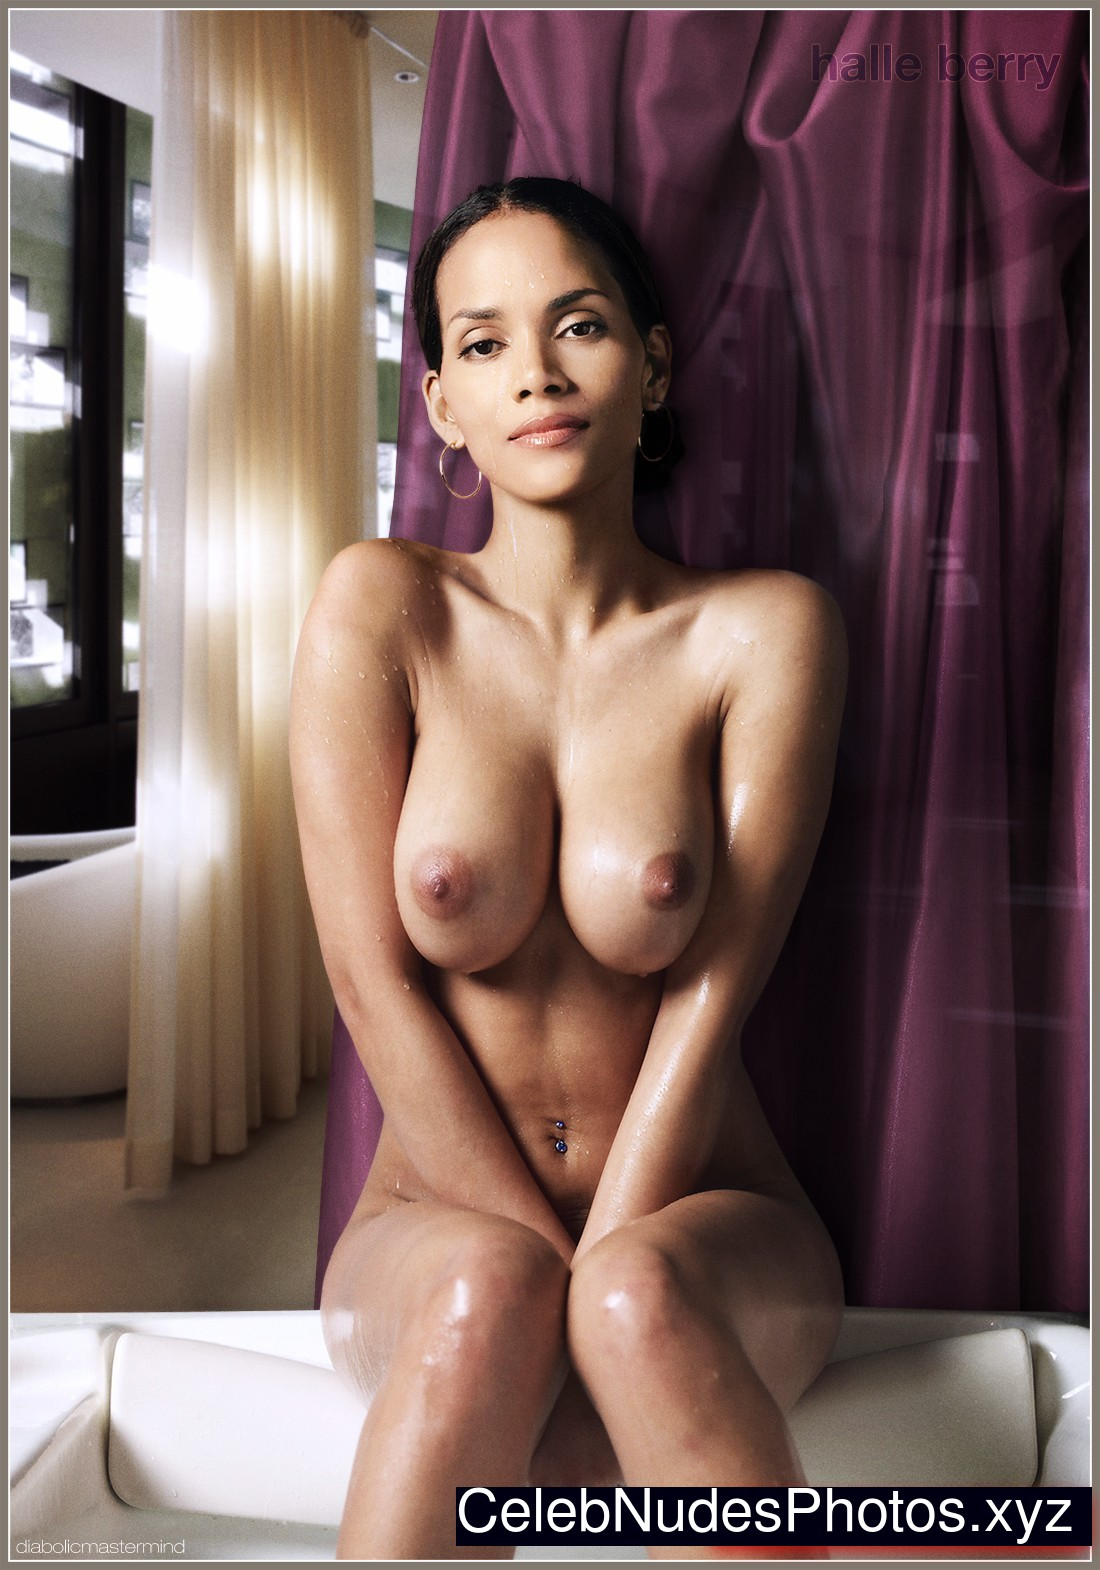 Halle Berry Naked celebrity picture sexy 24